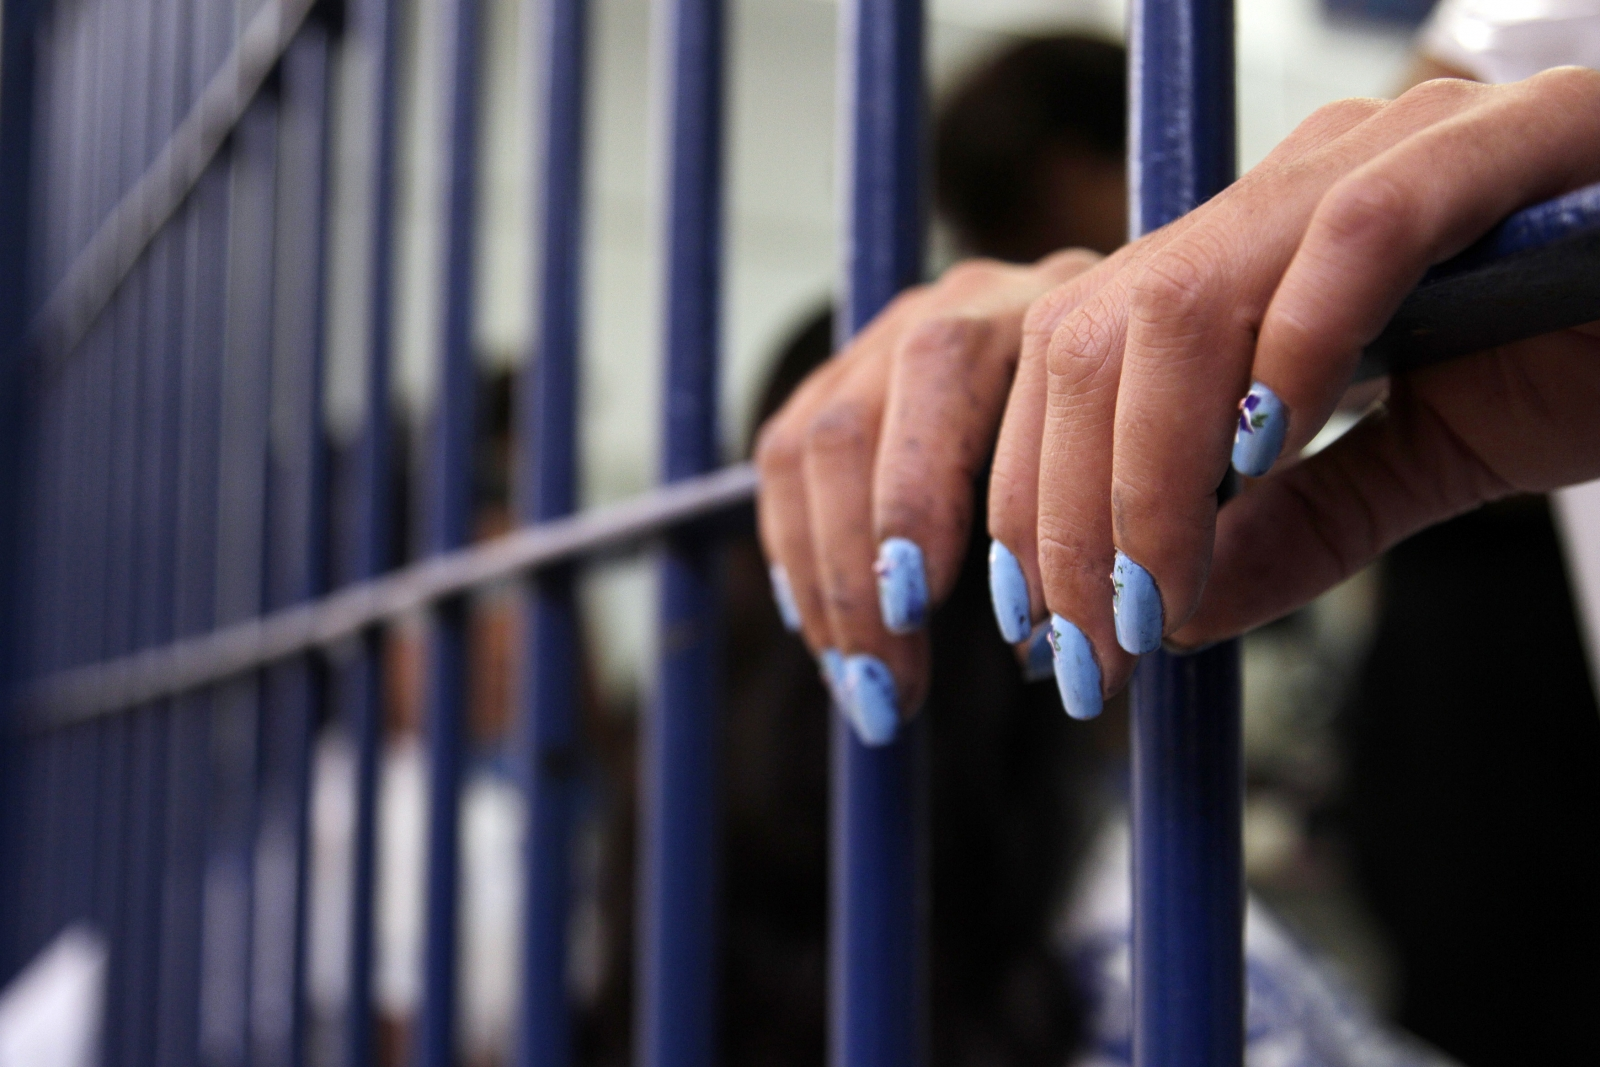 an inmate of the Women's Prison of Brasilia during preparations for the third annual beauty pageant titled Miss Penitentiary